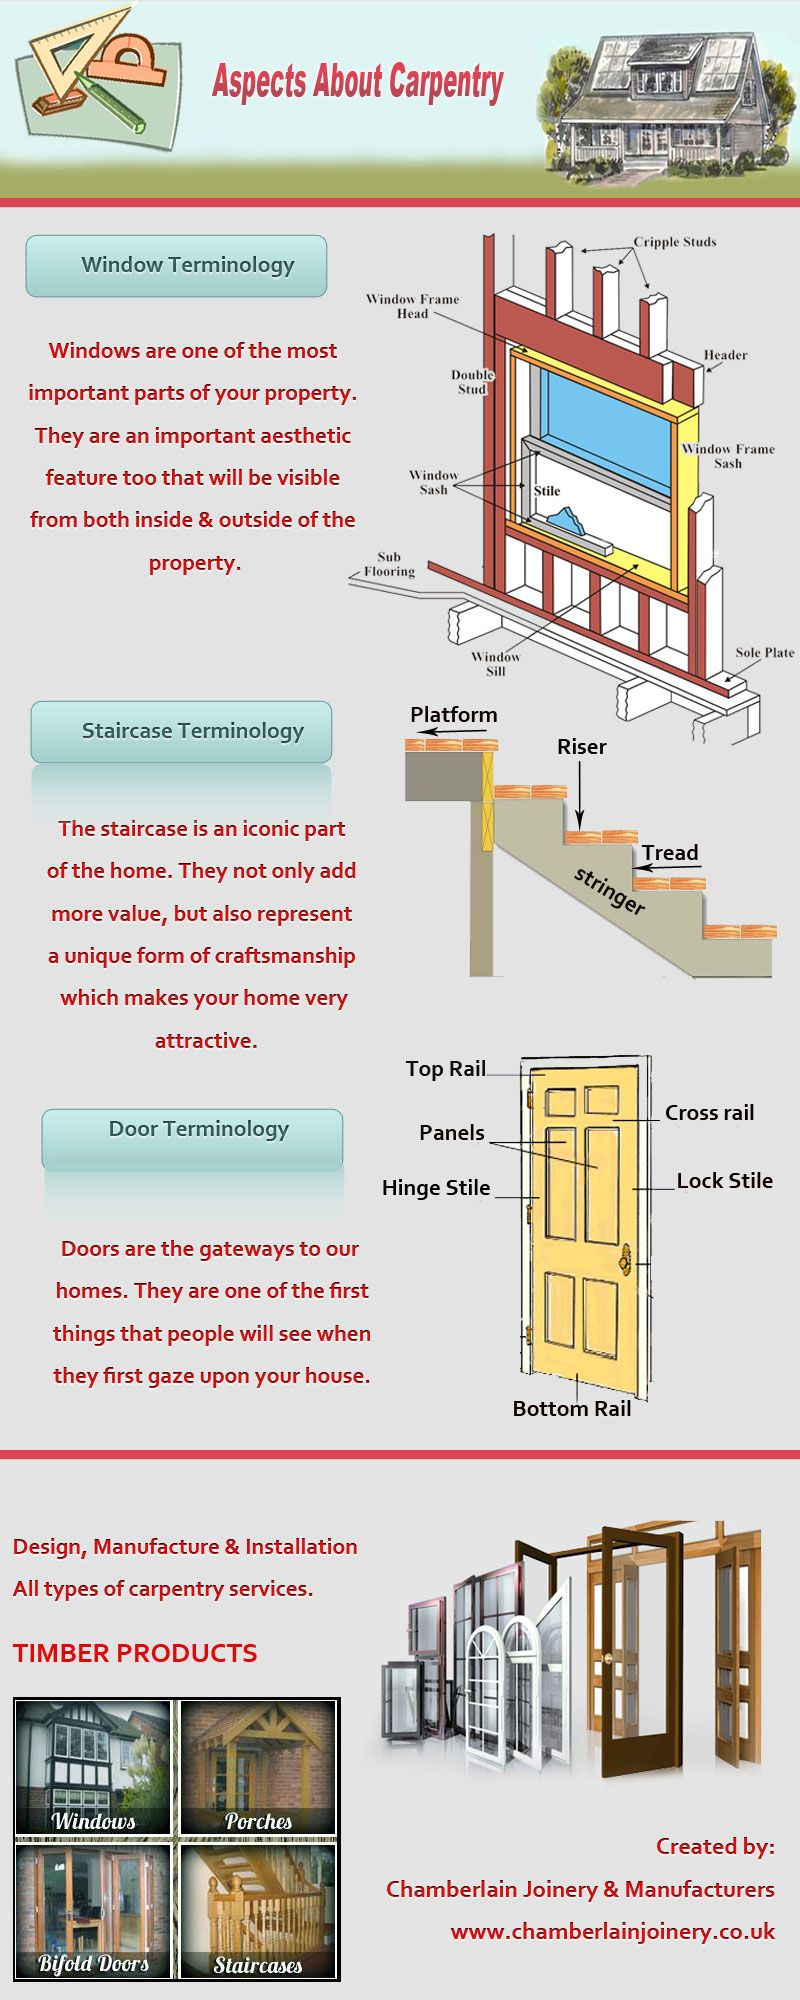 This visualization depicts the aspects about carpentry. It